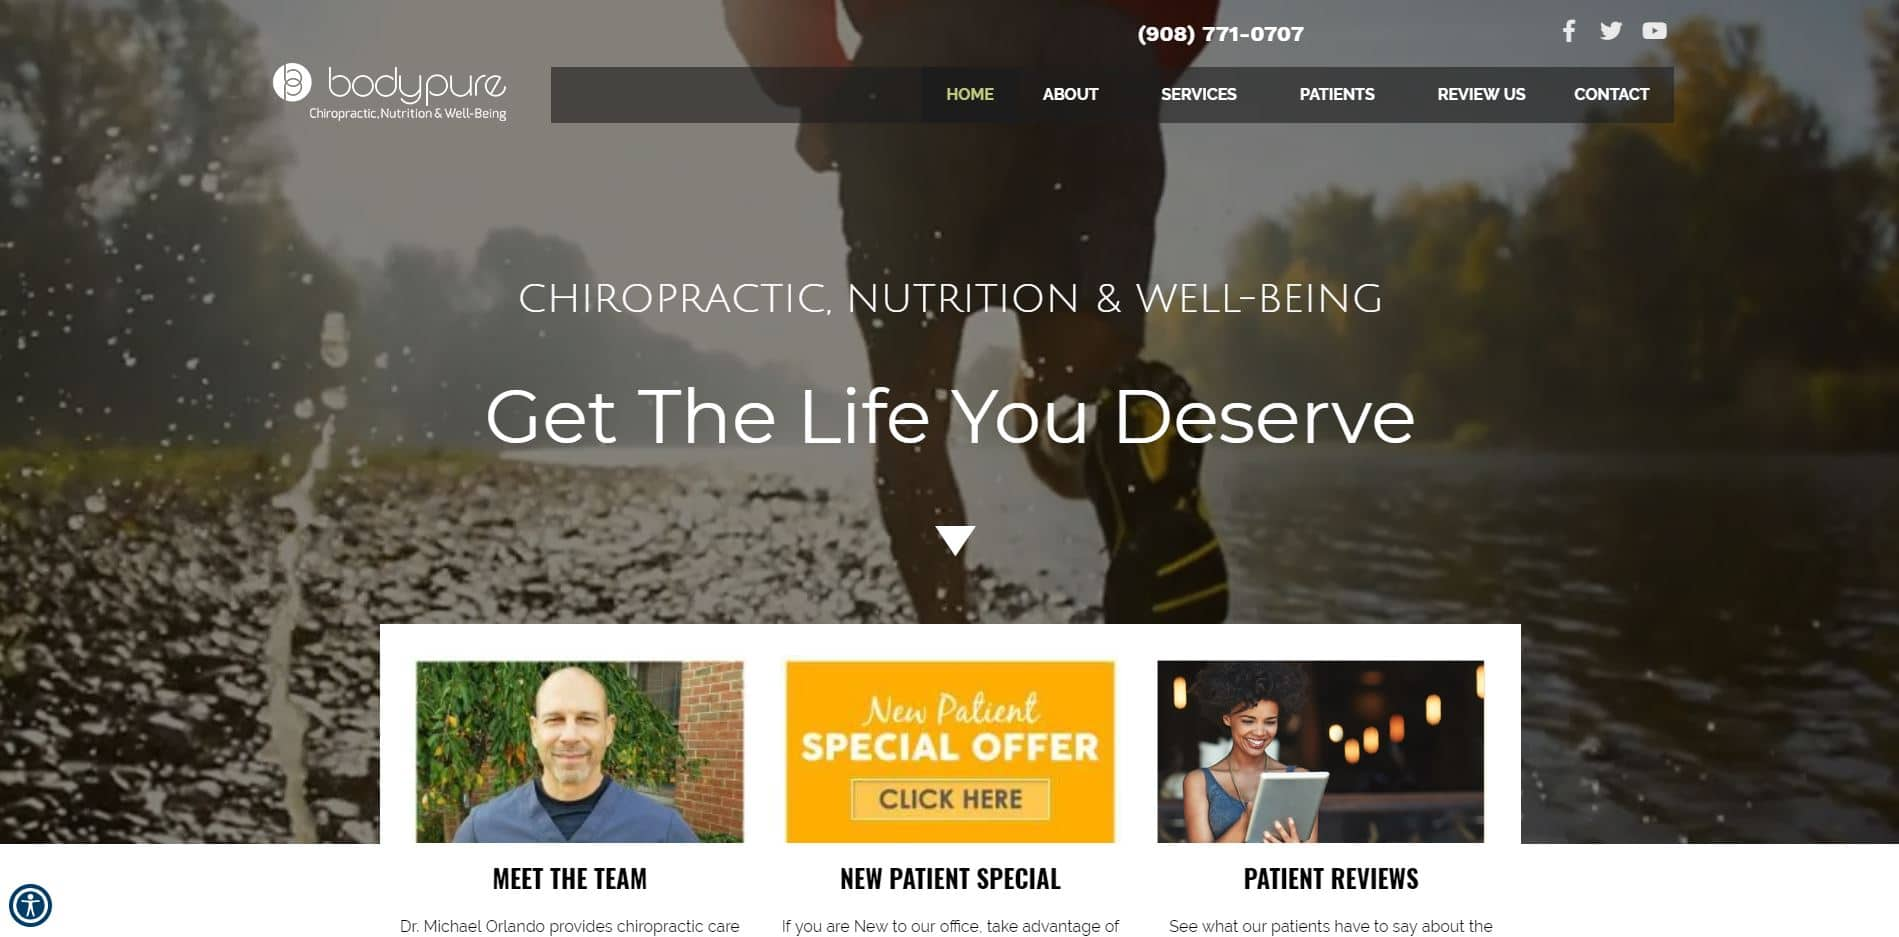 Chiropractor in New Providence